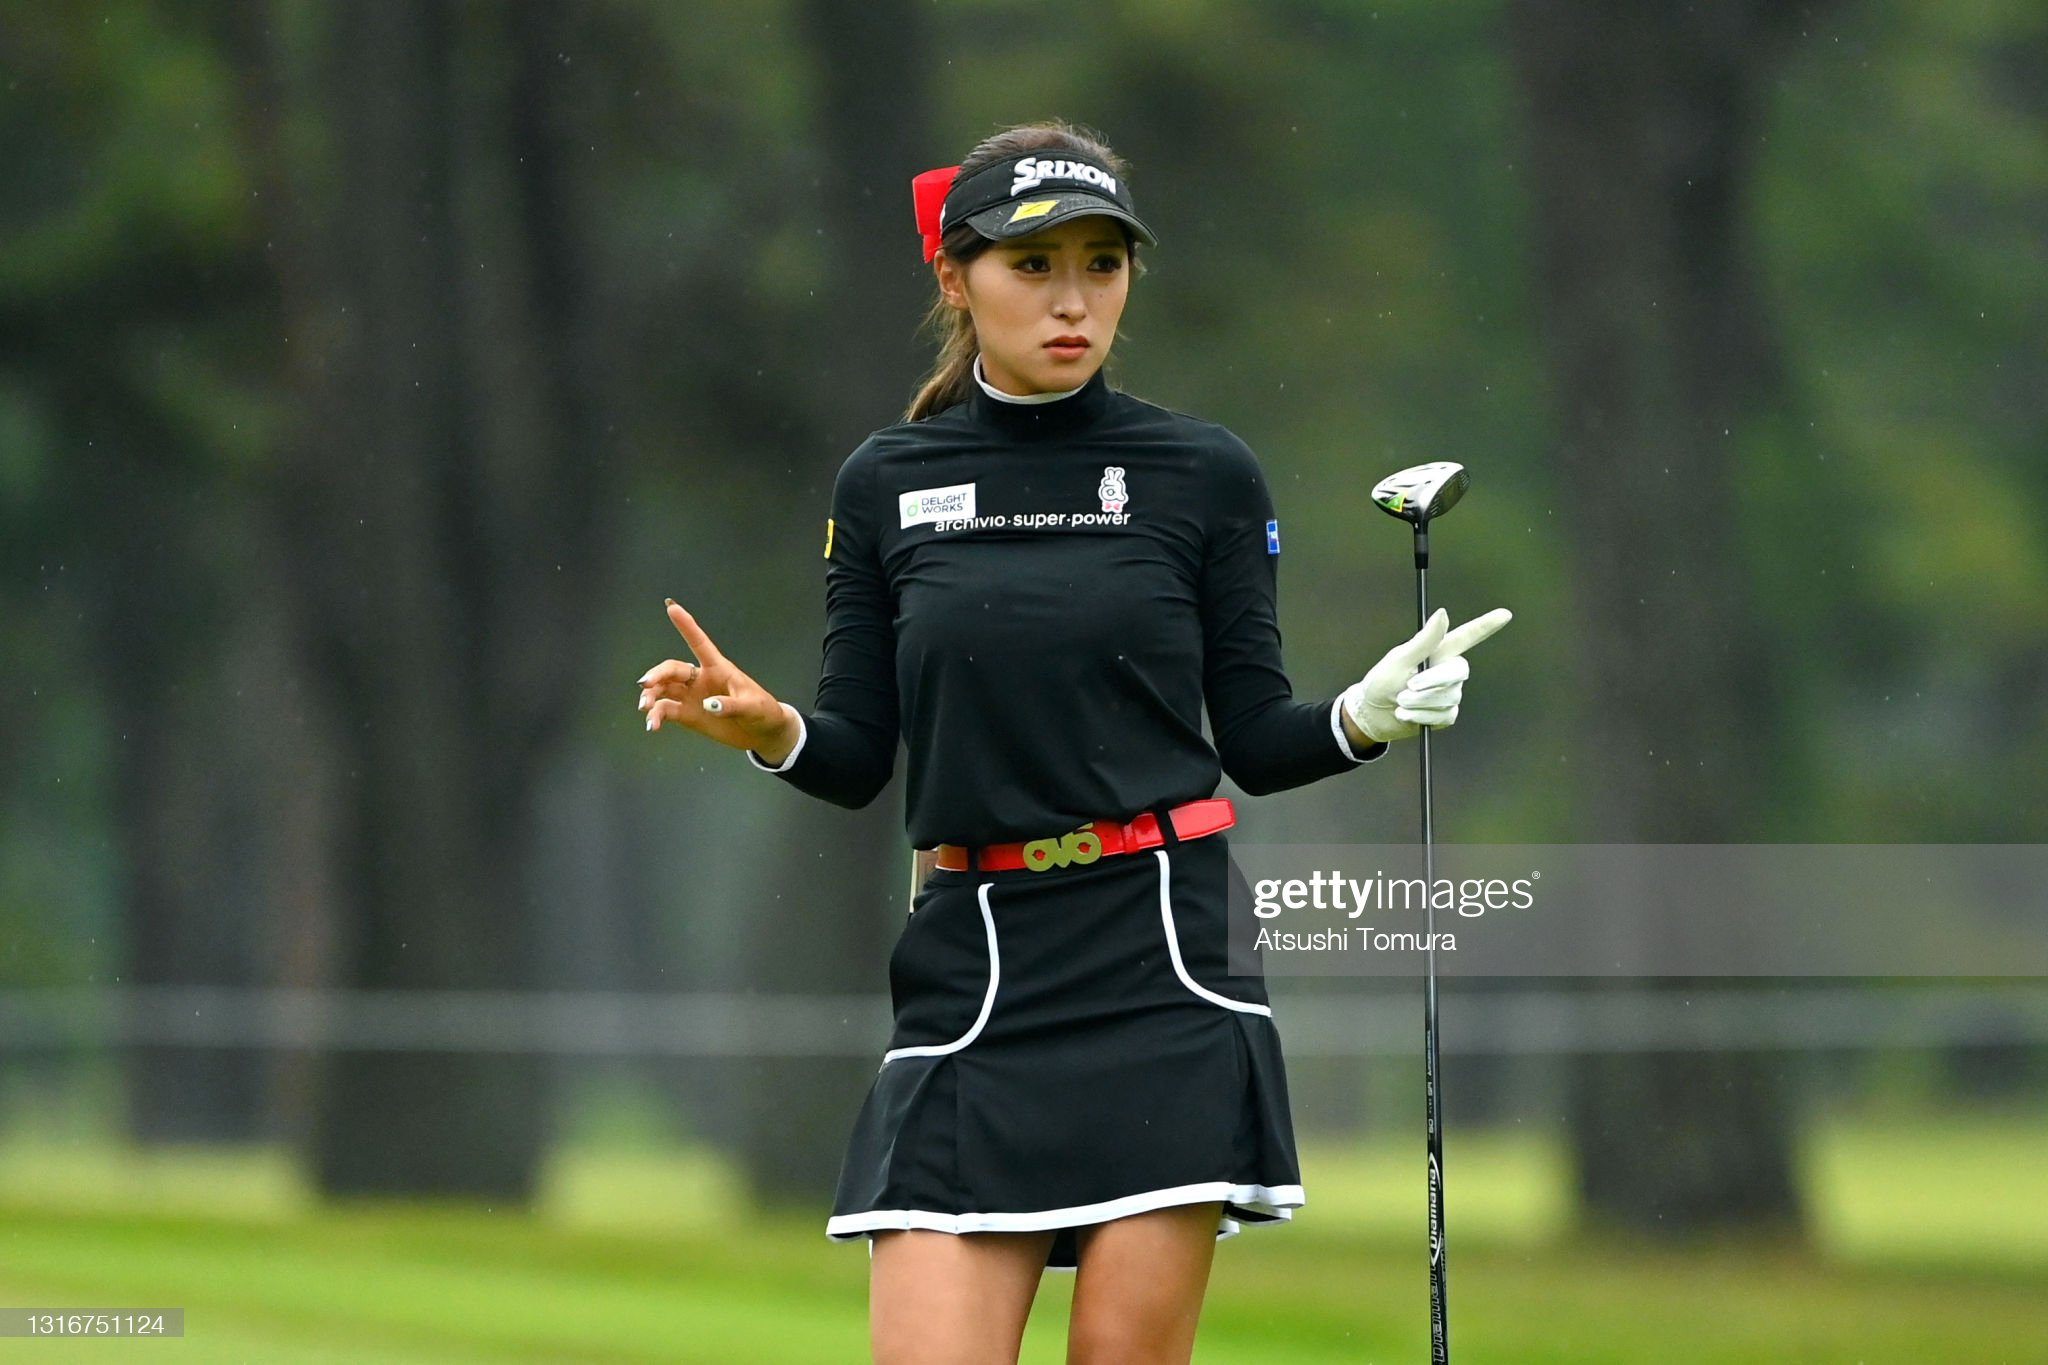 https://media.gettyimages.com/photos/reika-usui-of-japan-reacts-after-her-second-shot-on-the-9th-hole-the-picture-id1316751124?s=2048x2048